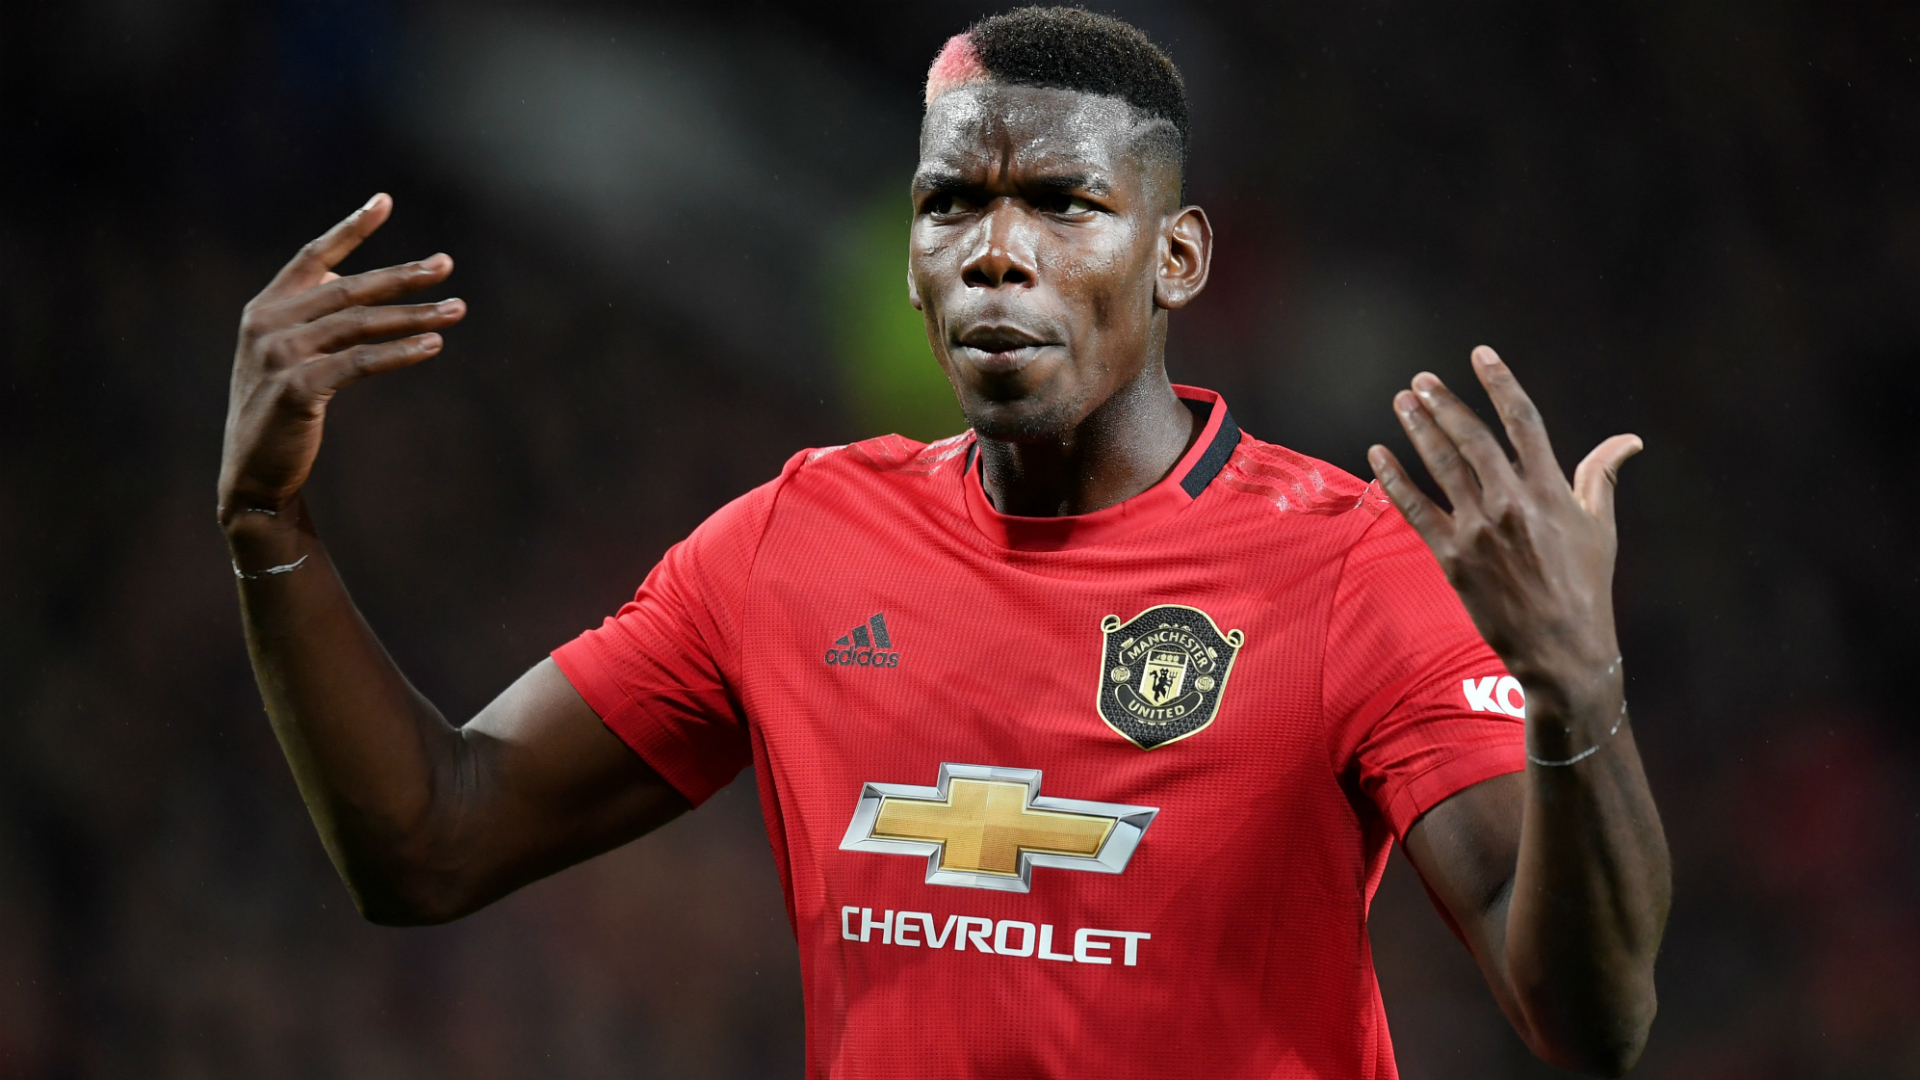 Solskjaer has 'no problem at all' with Pogba meeting Zidane